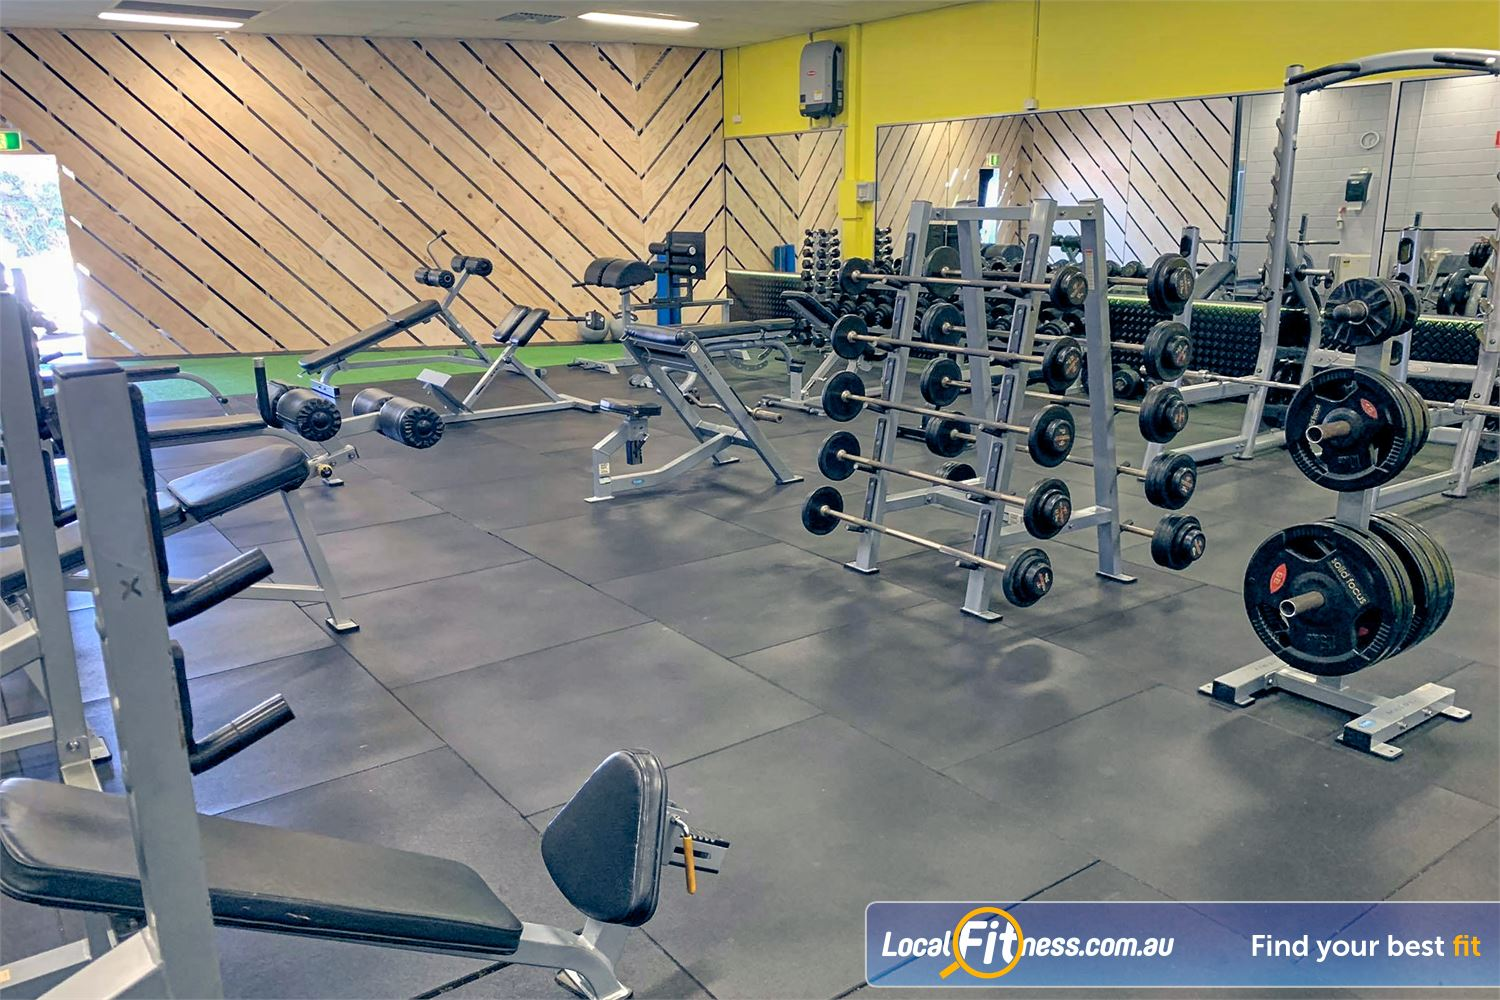 Culture 24:7 Near Greenwood Fully equipped free-weights area with dumbbells, barbells, benches and more.